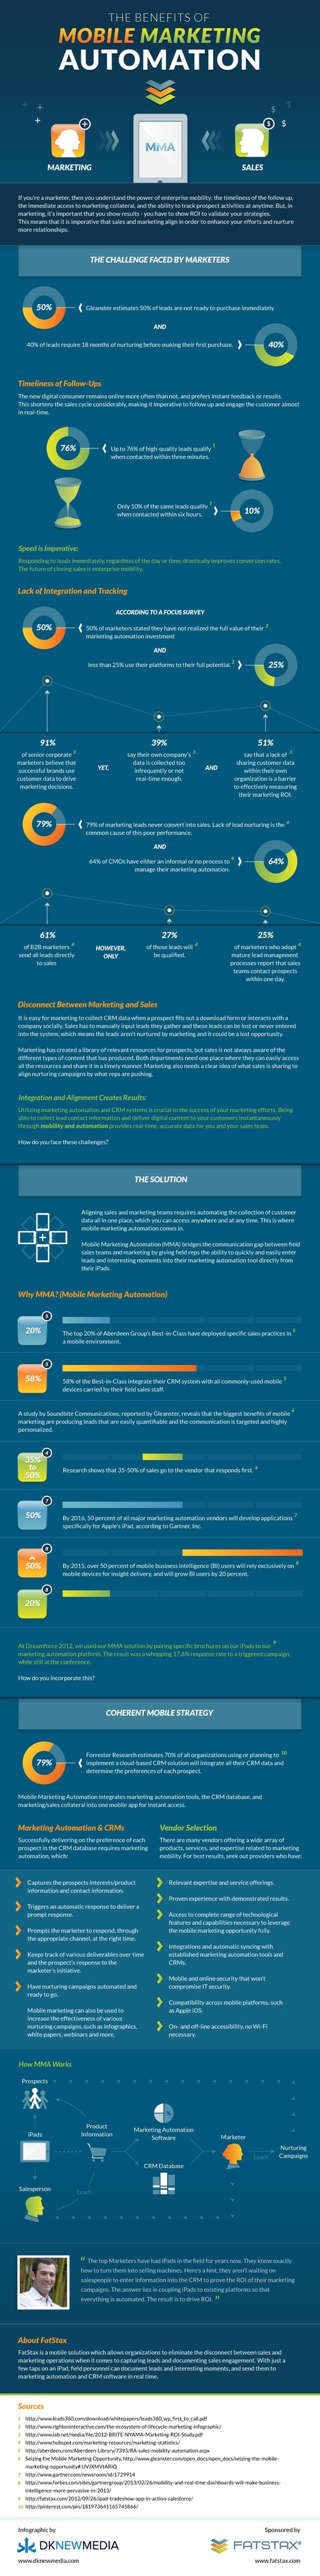 Mobile Marketing Automation Infograph - FatStax | QR code marketing | Scoop.it